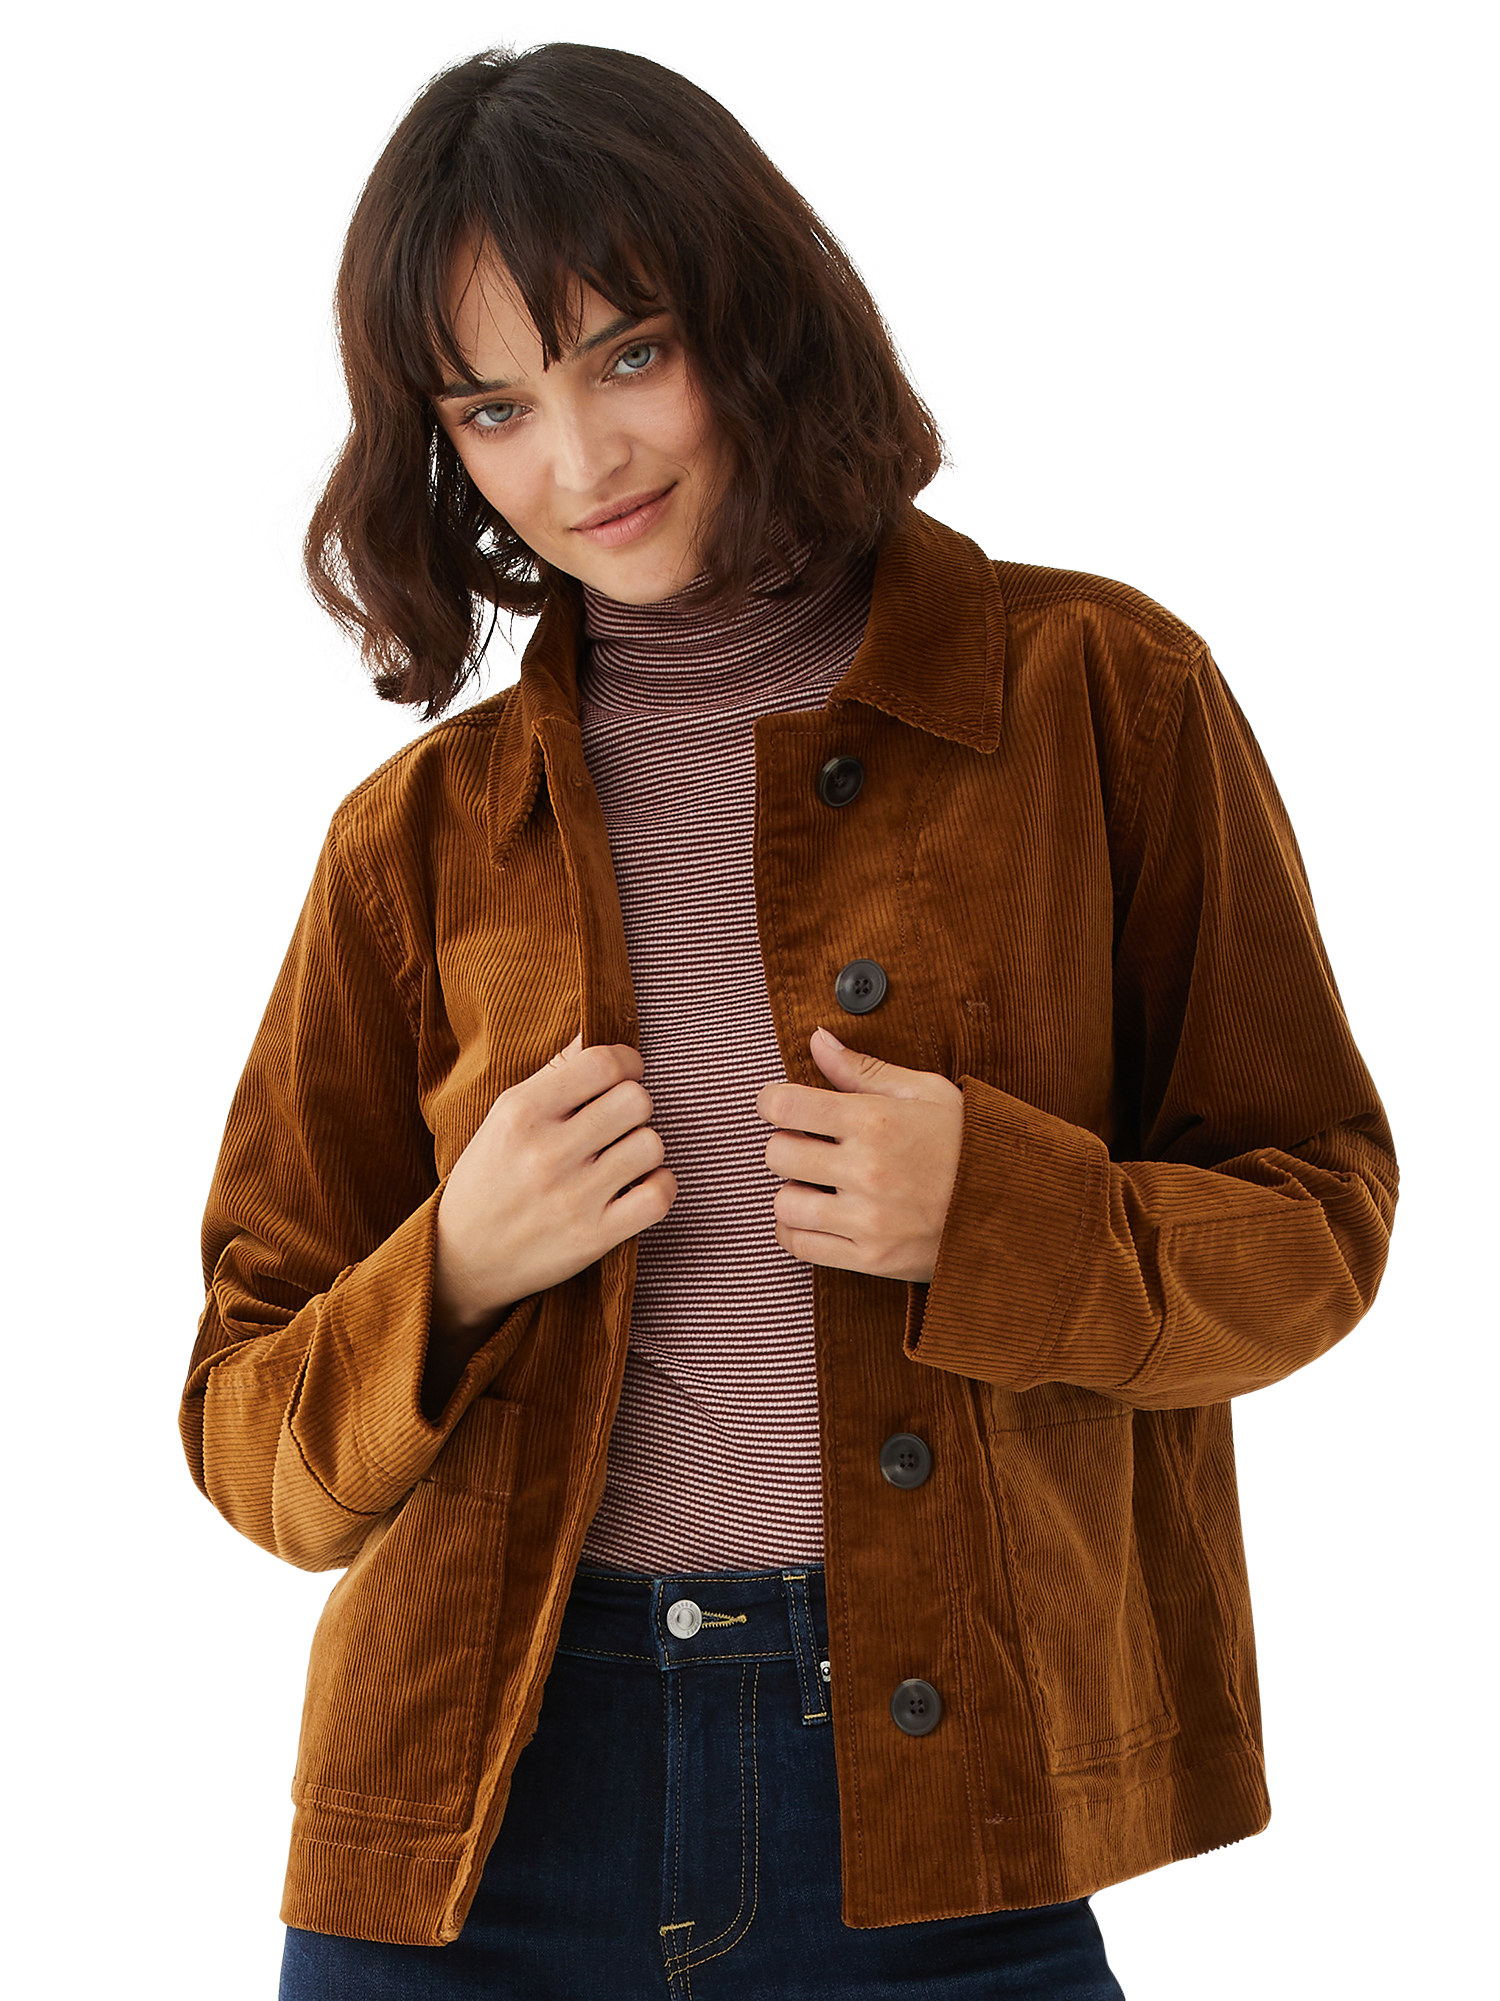 Model wearing brown jacket with striped shirt